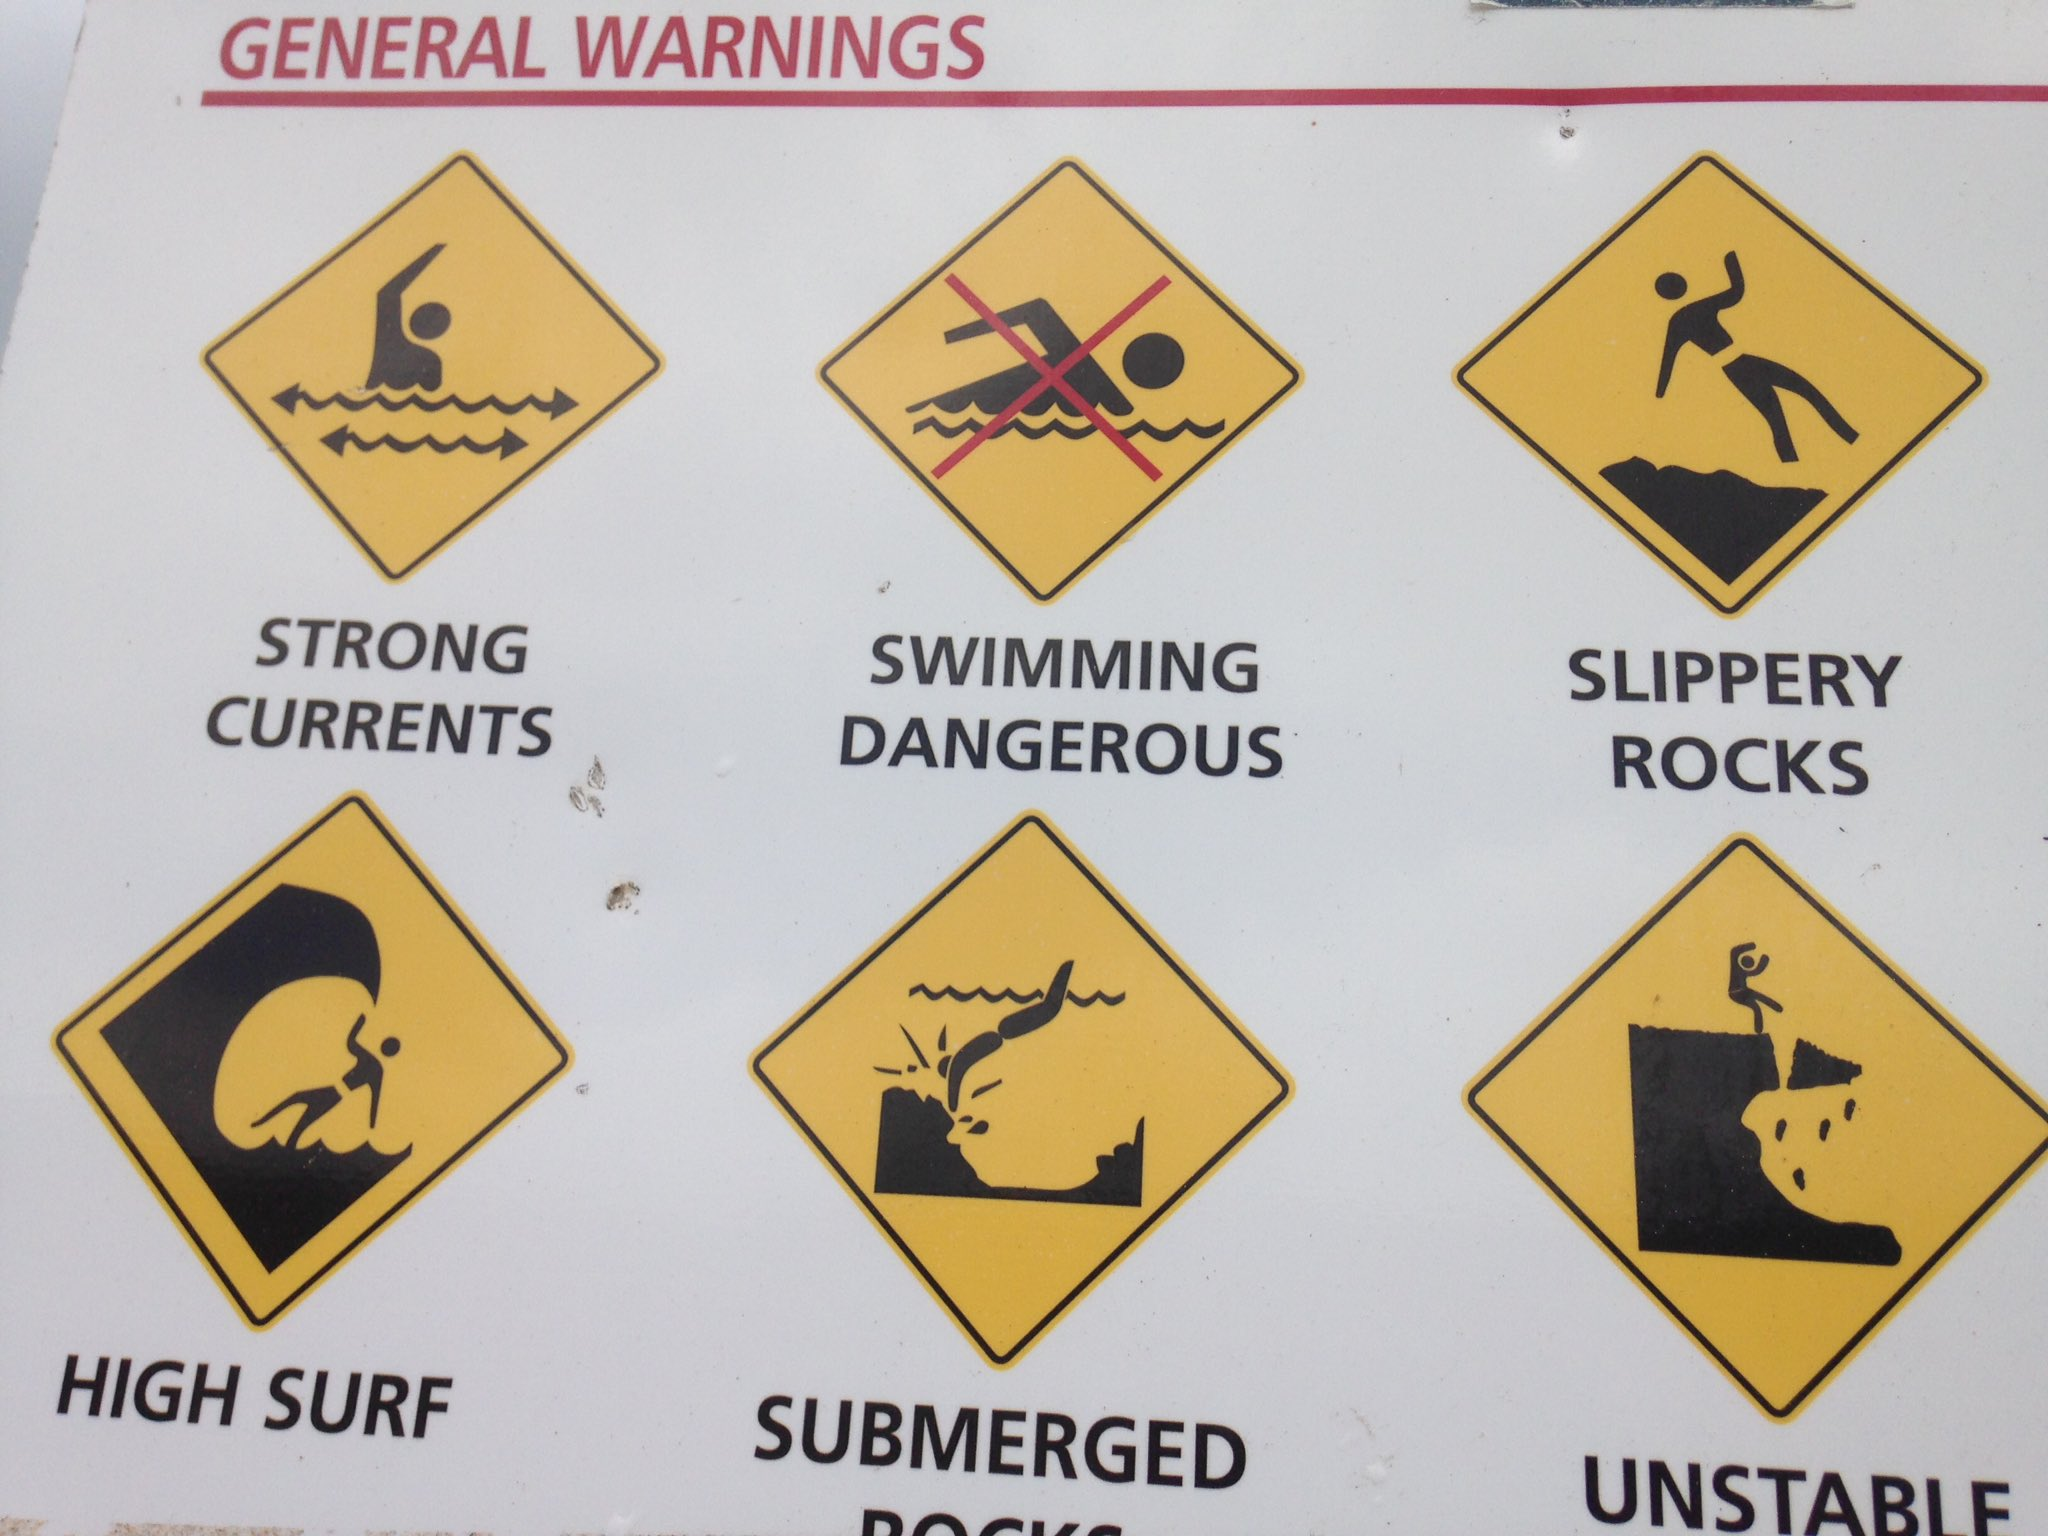 One must always stay alert in Australia, though. Things we don't think twice about doing in other countries can be dangerous here https://t.co/oPLi7kgWZ2